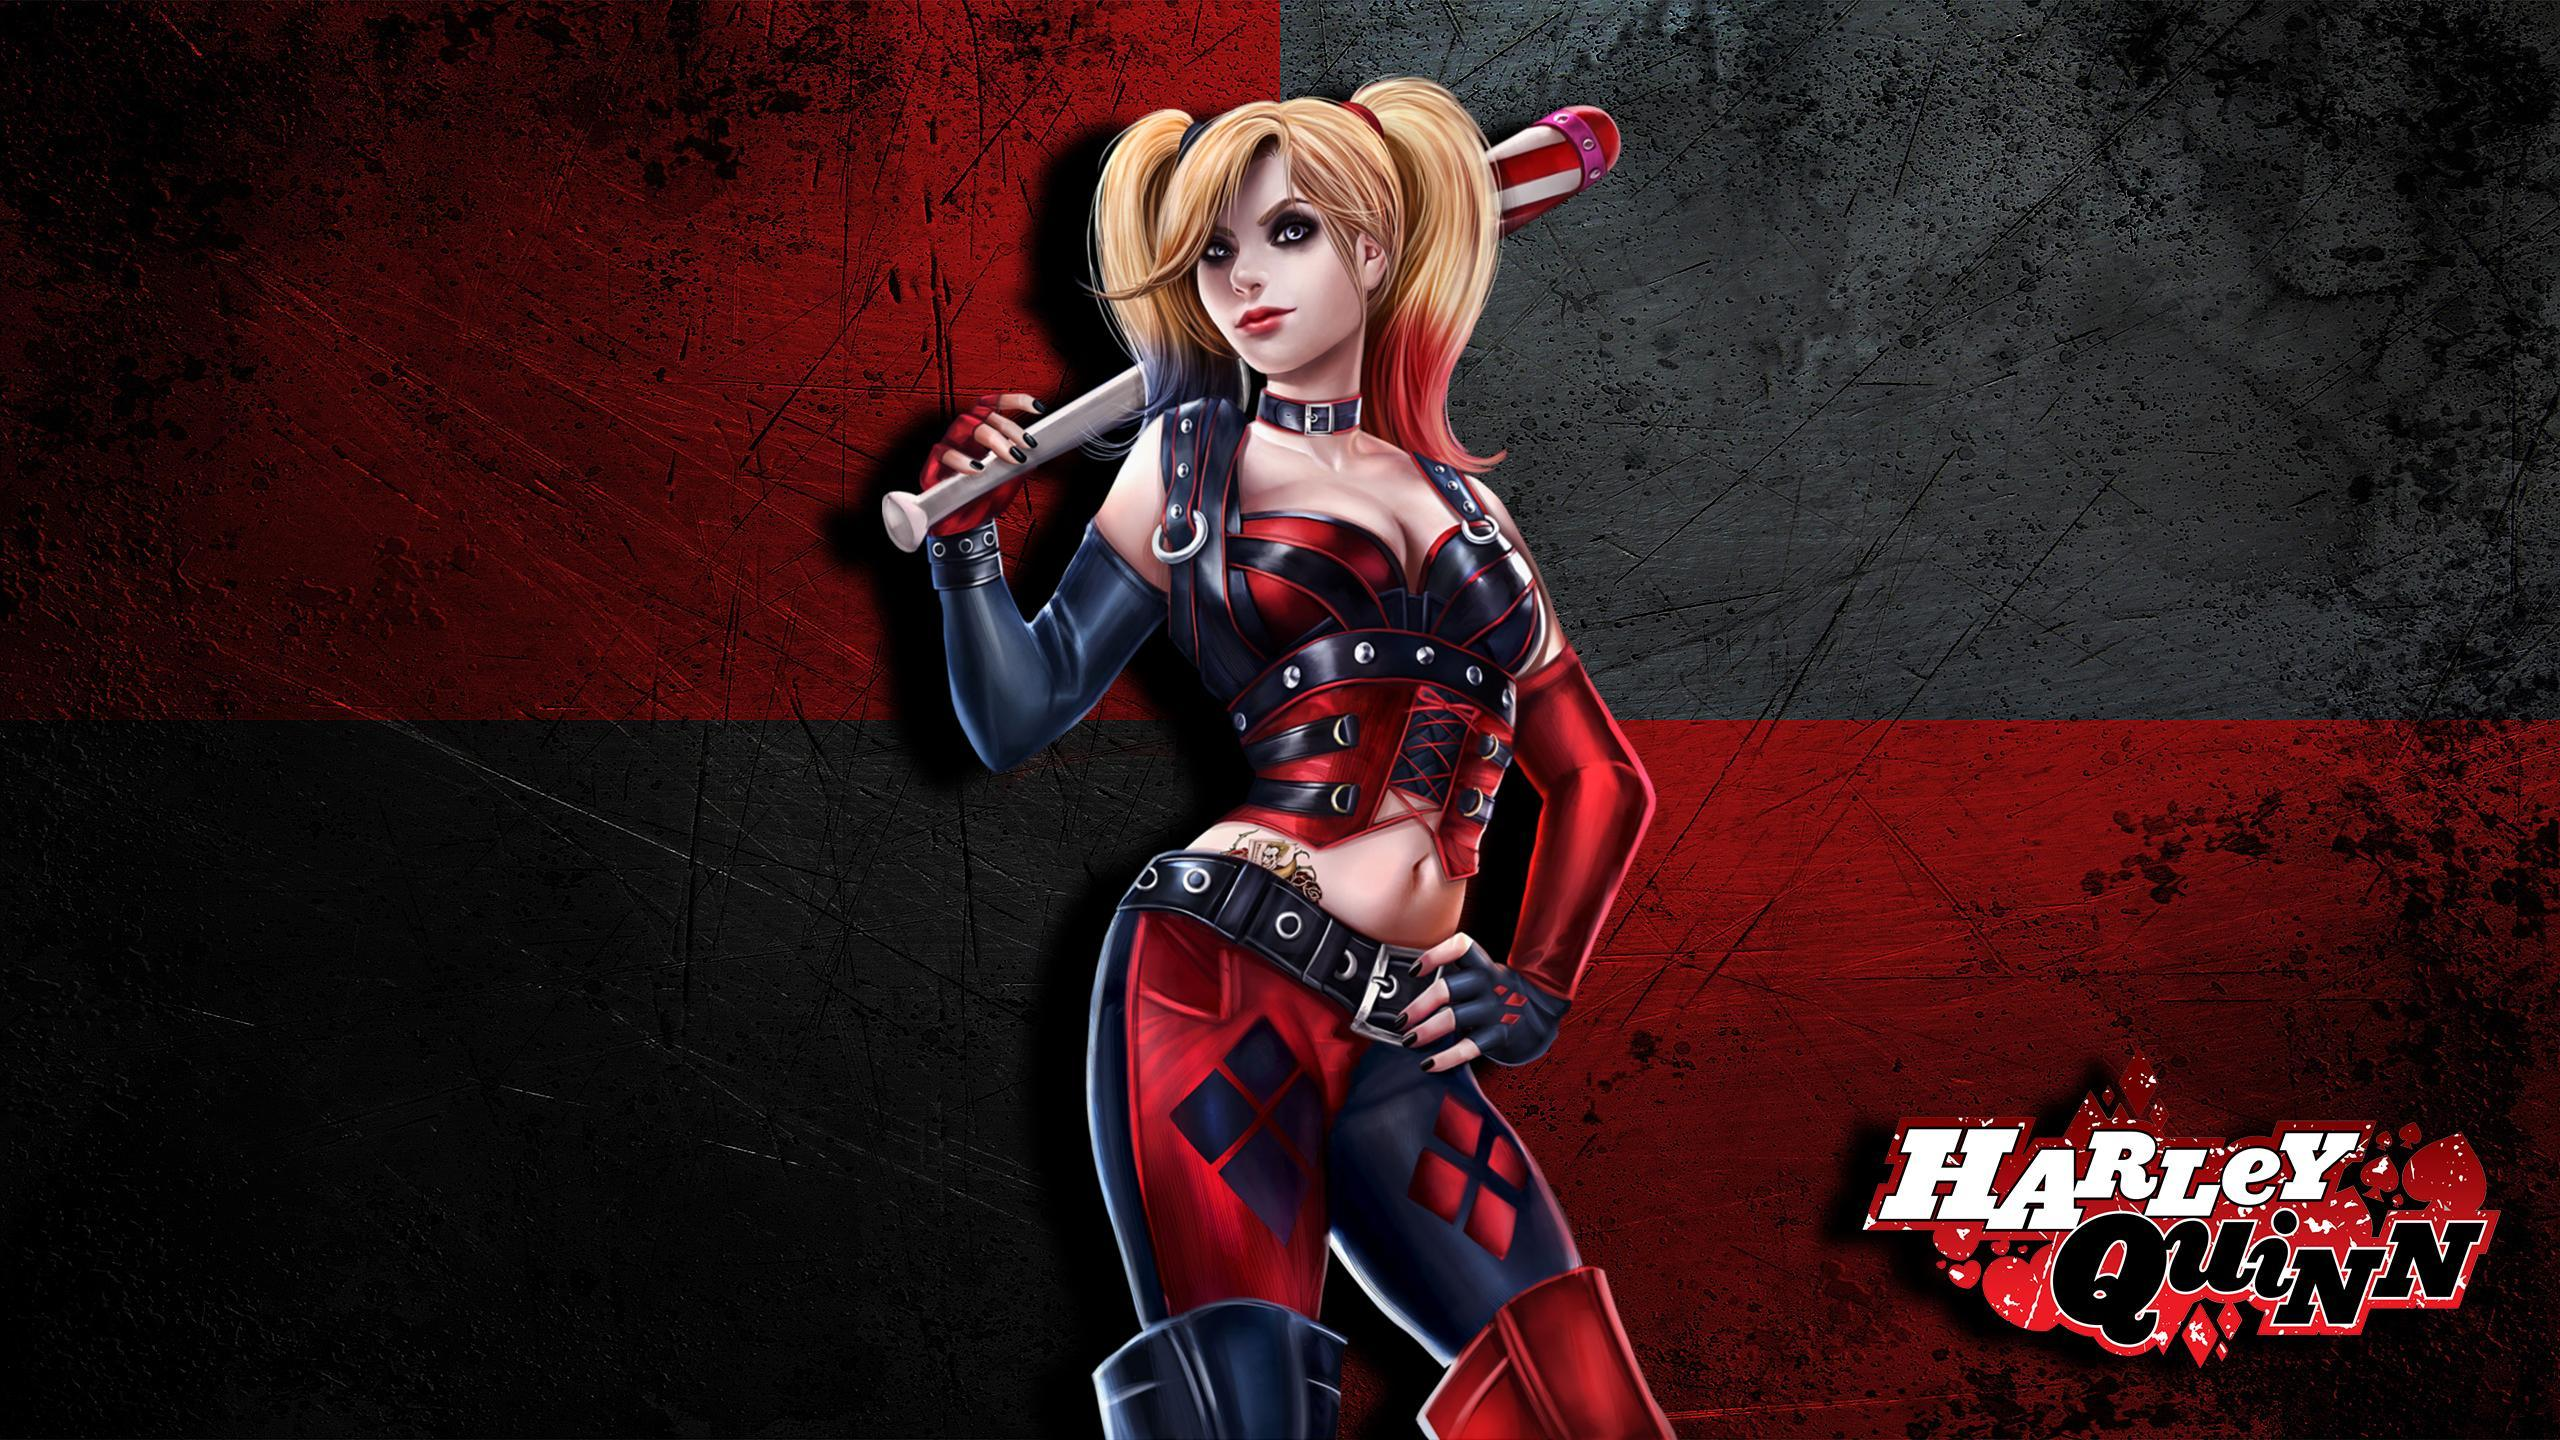 Harley Quinn wallpaper I made and thought I would share =] : HarleyQuinn